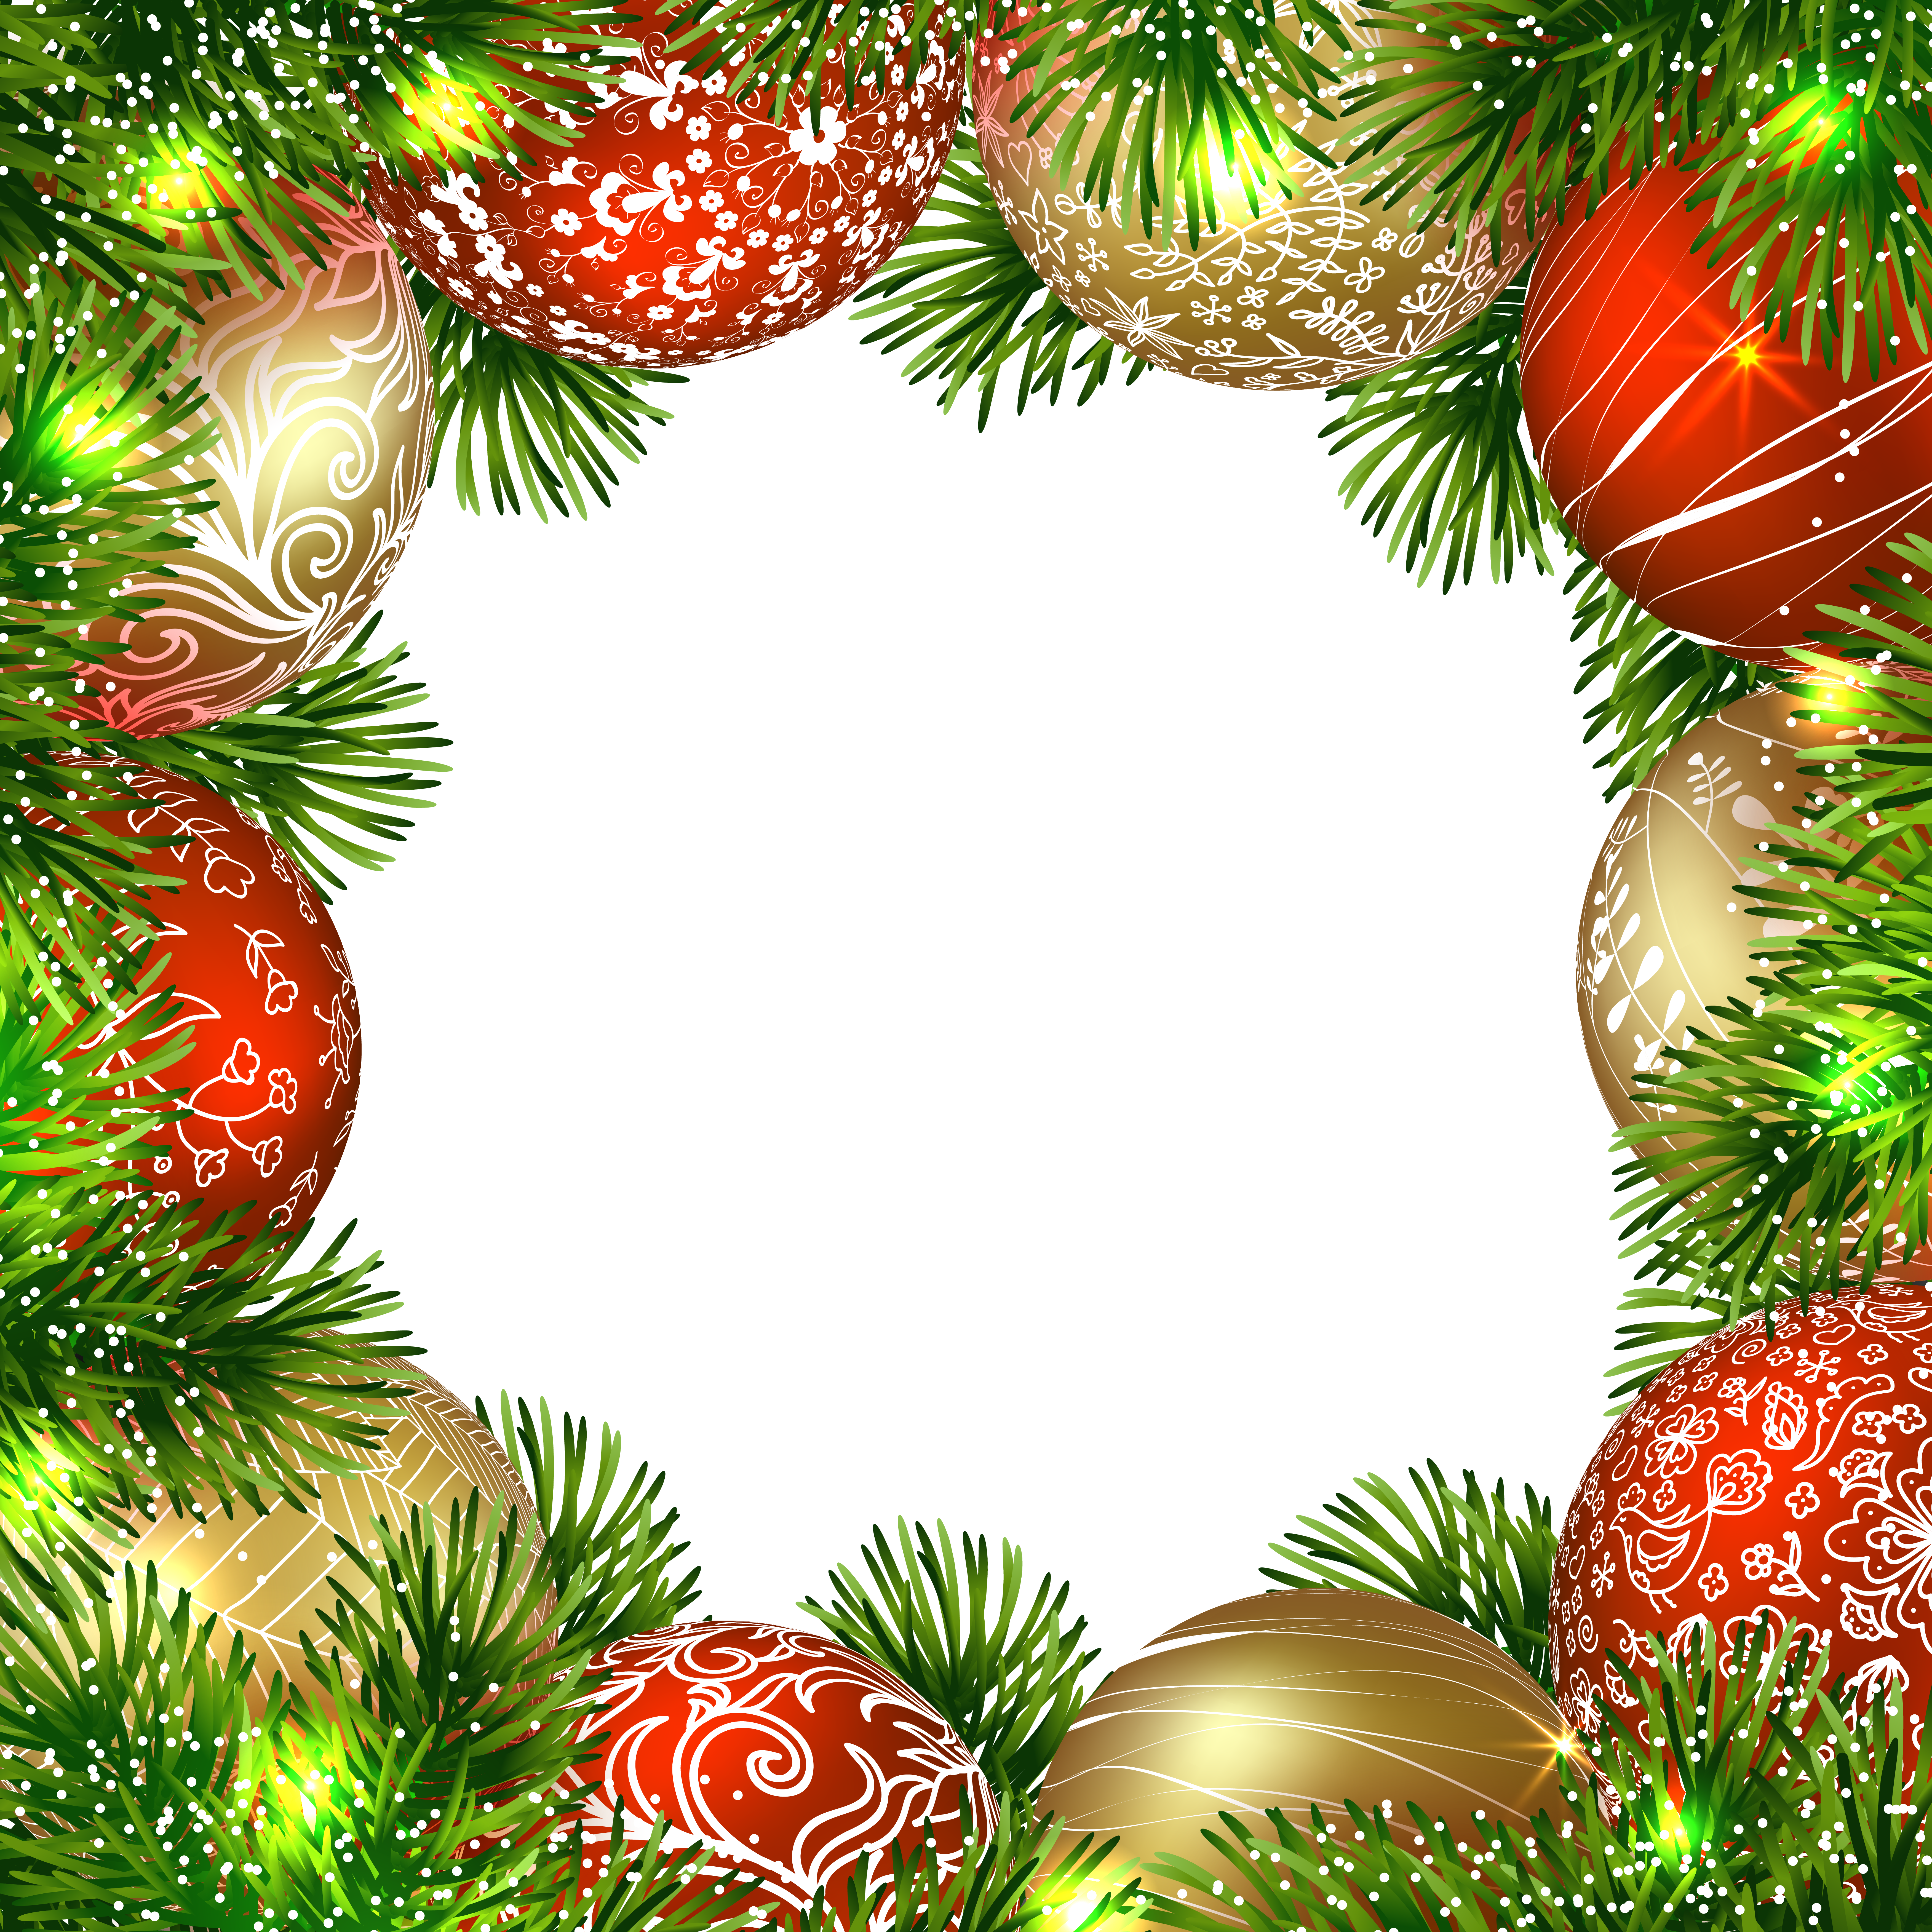 vector library download Transparent png border frame. Clipart christmas borders and frames